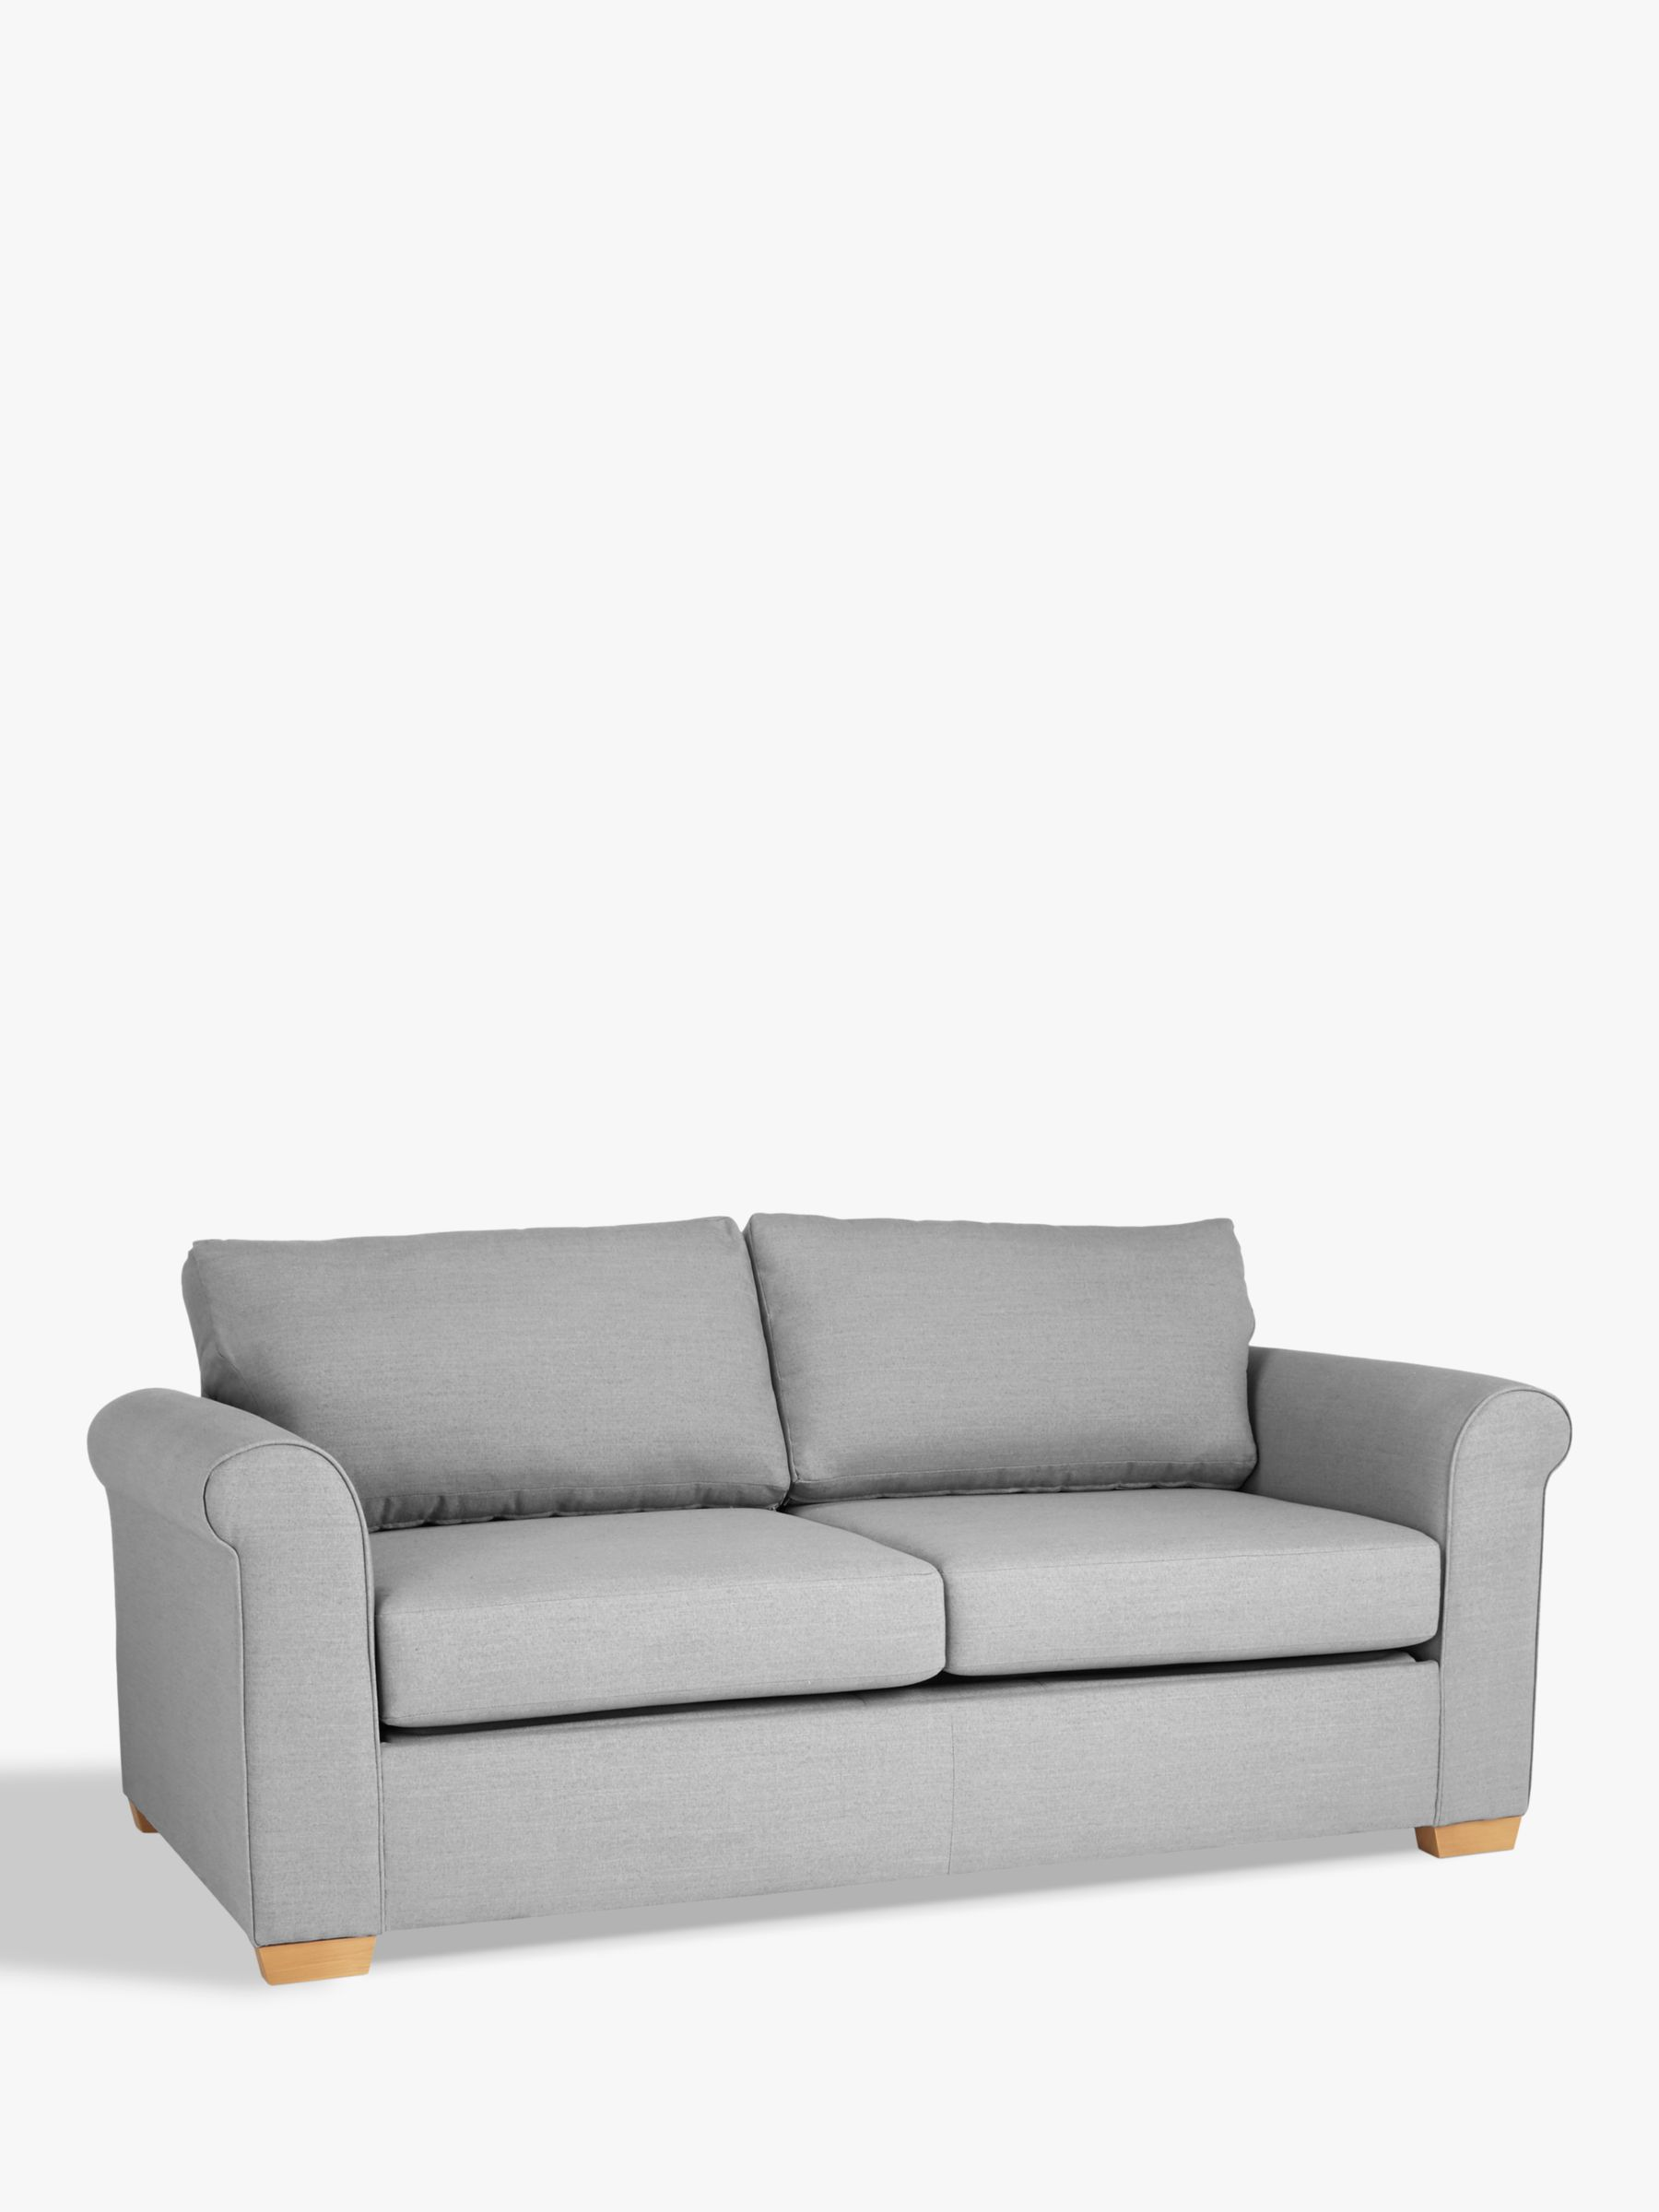 Exceptionnel John Lewis U0026 Partners Malone Small 2 Seater Sofa Bed With Memory Foam  Mattress At John Lewis U0026 Partners